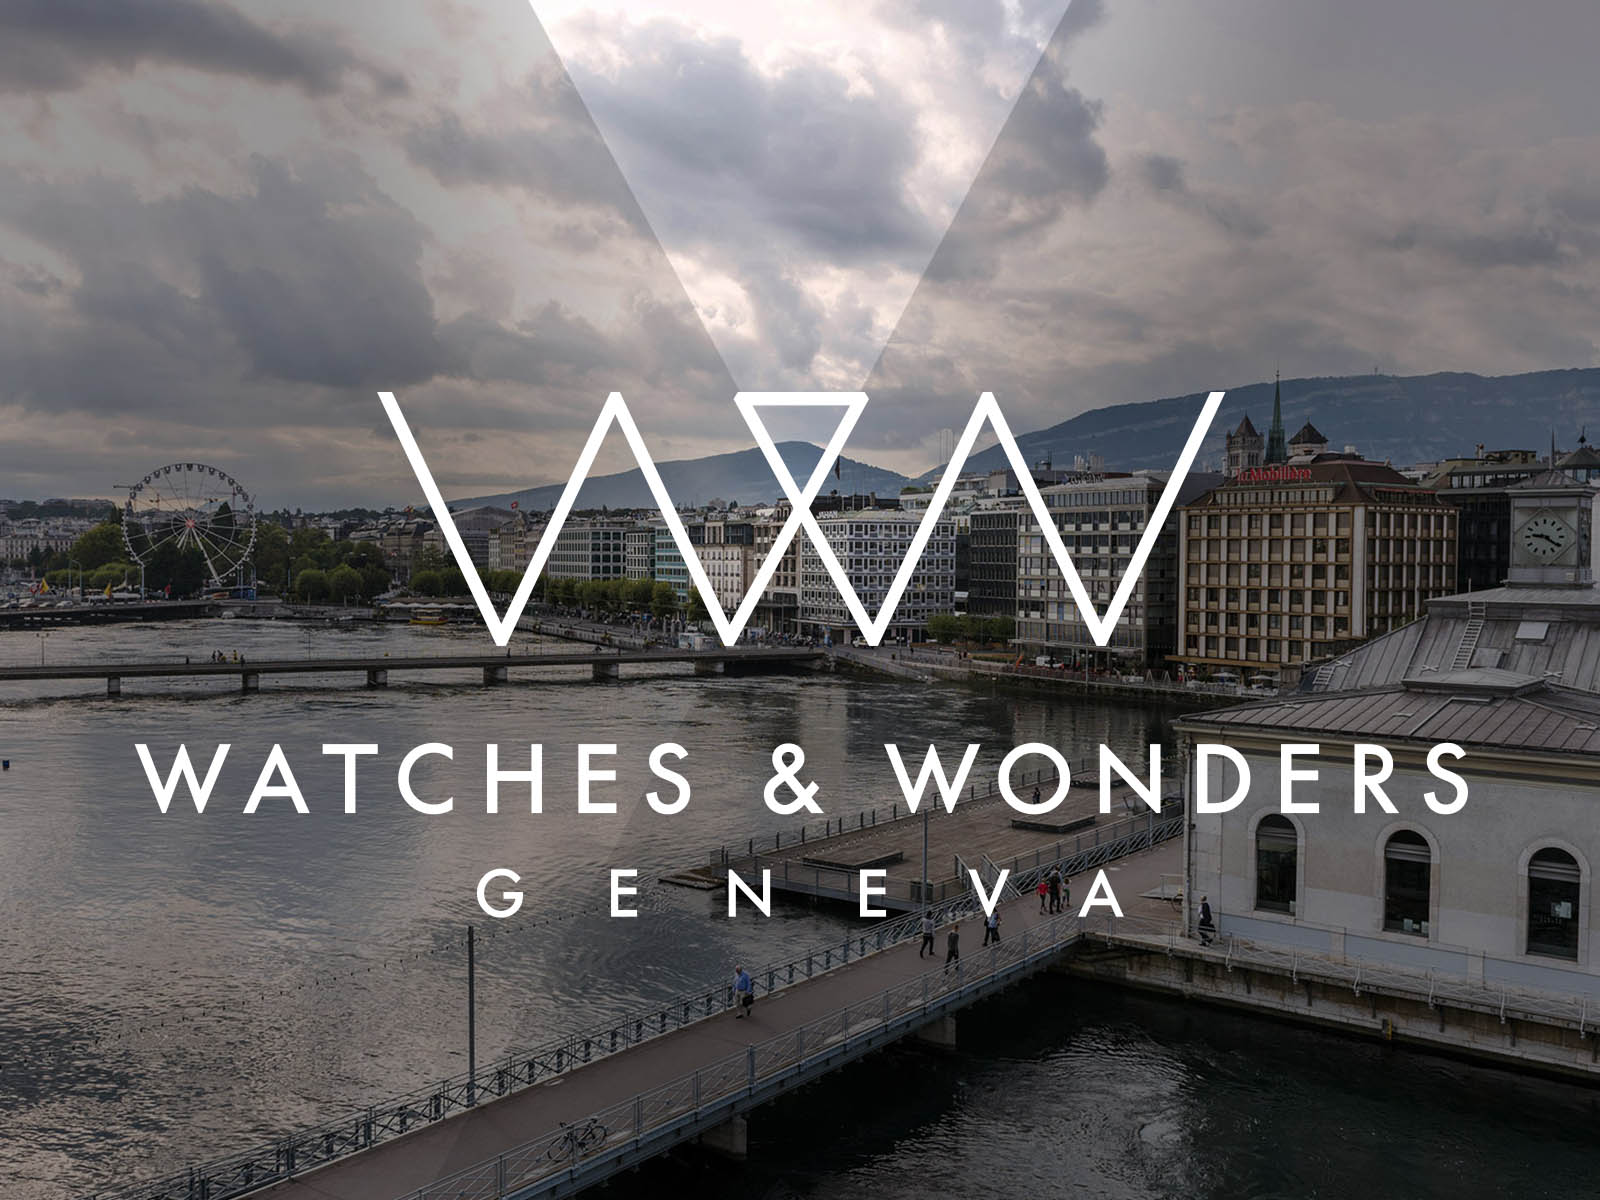 watches-wonders-geneva-new-format-sihh-4.jpg